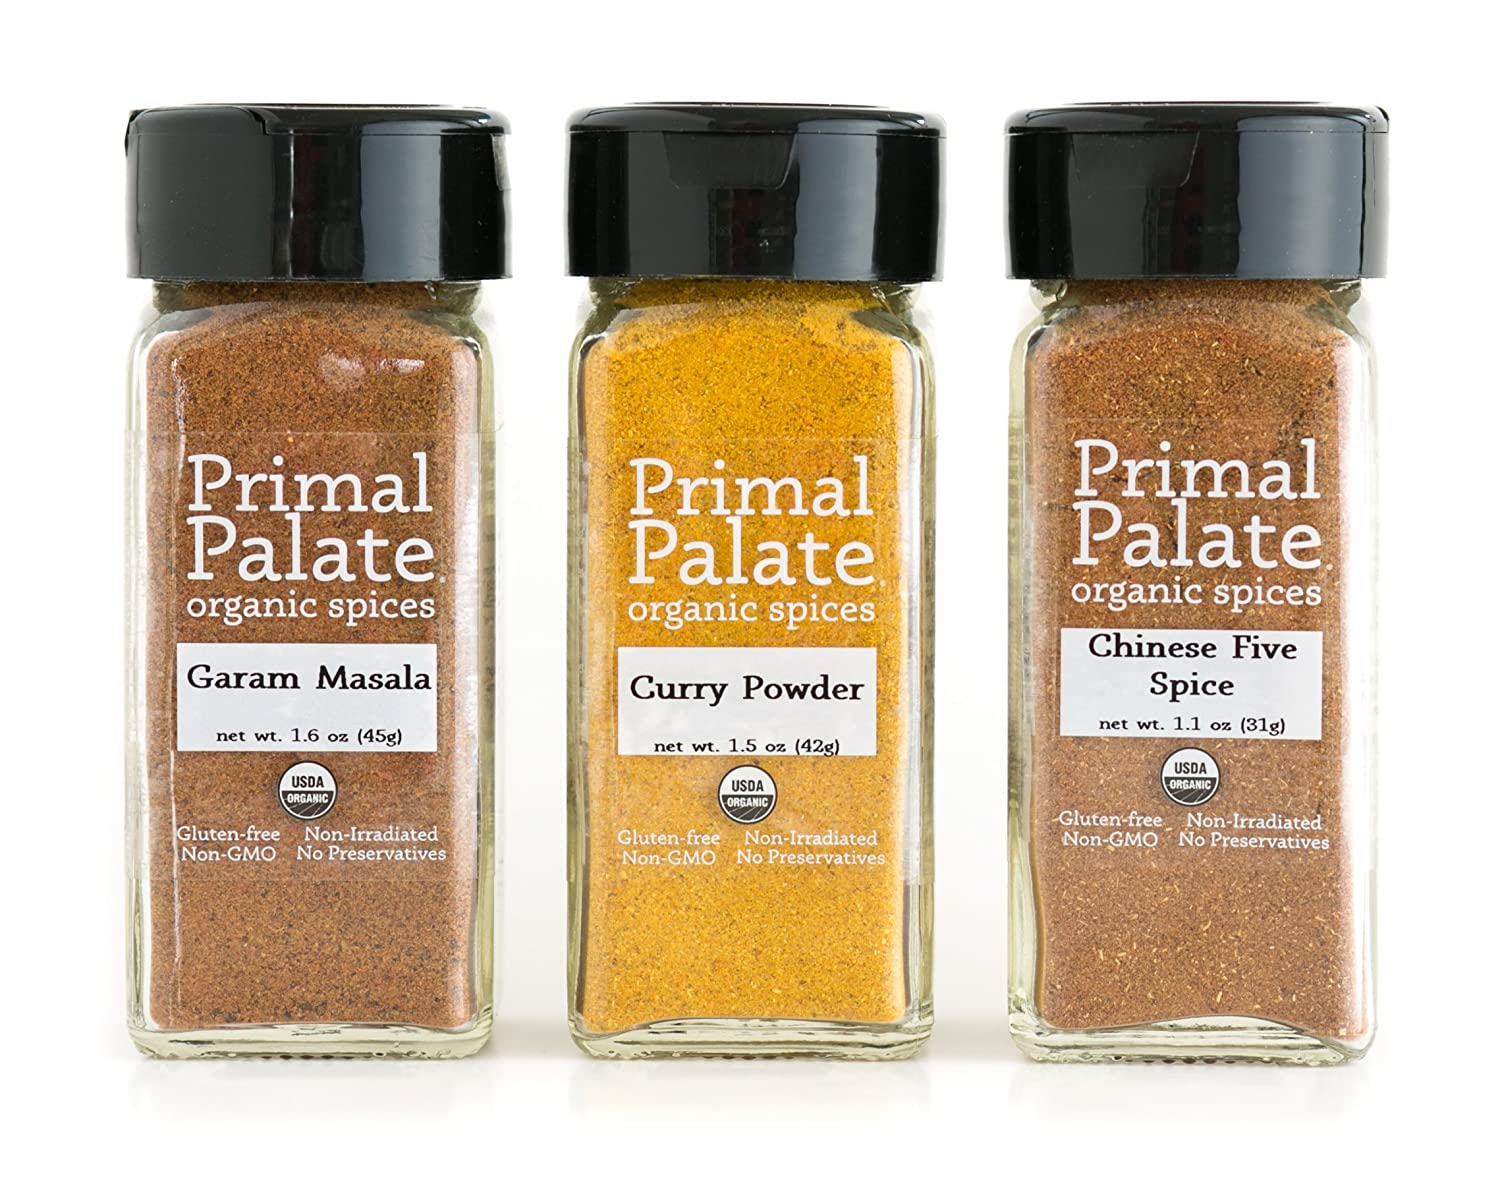 Primal Palate Organic Spices Los Angeles Mall - Taste 3-Bottle of Gift Colorado Springs Mall Asia Pack